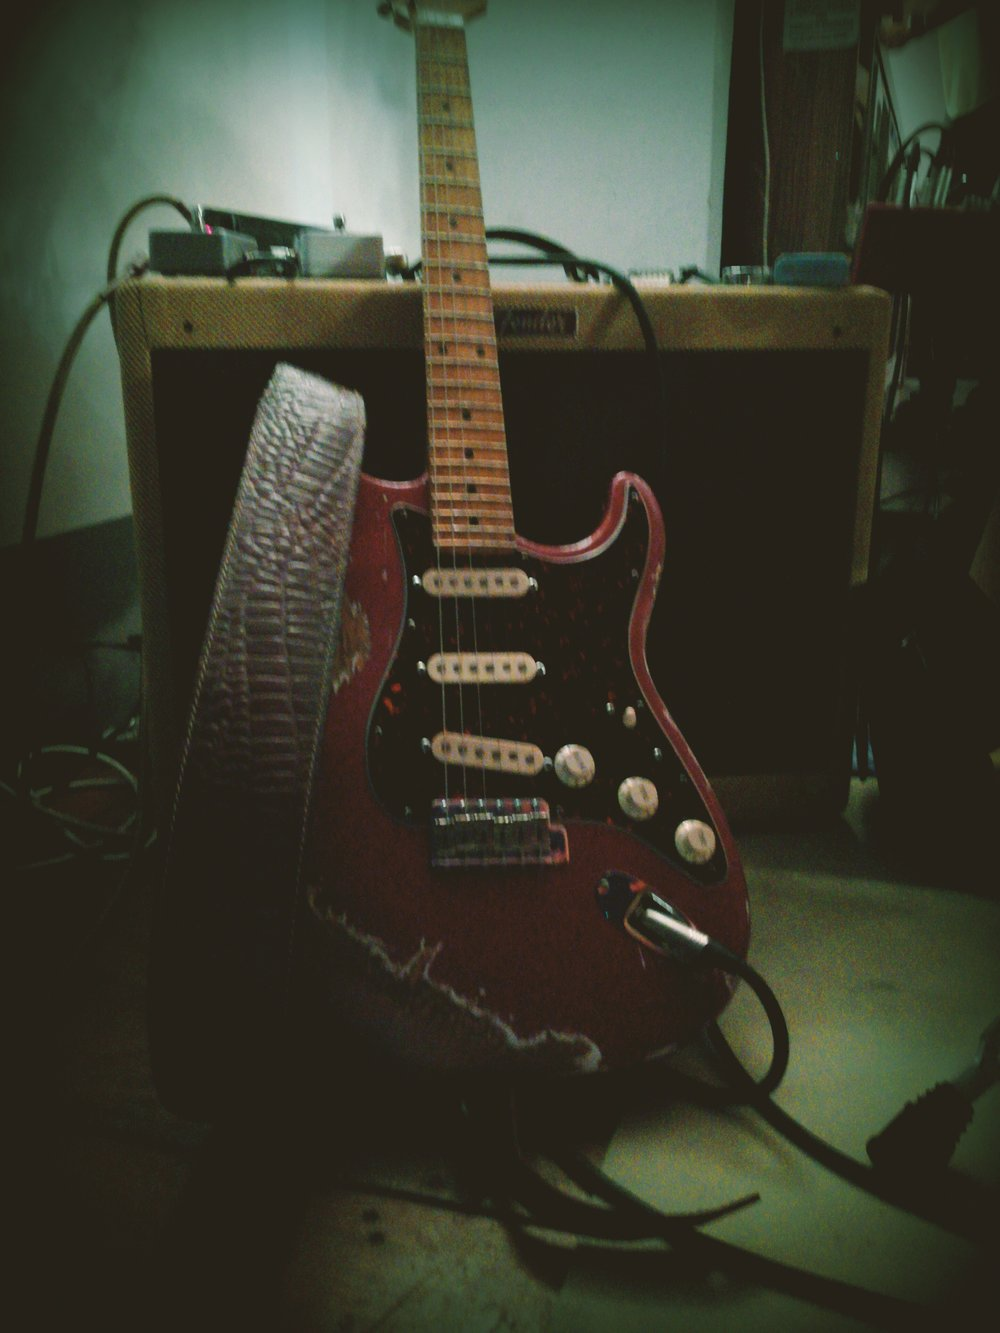 - Andrea's heavyrelic guitar, made of alder and maple wood